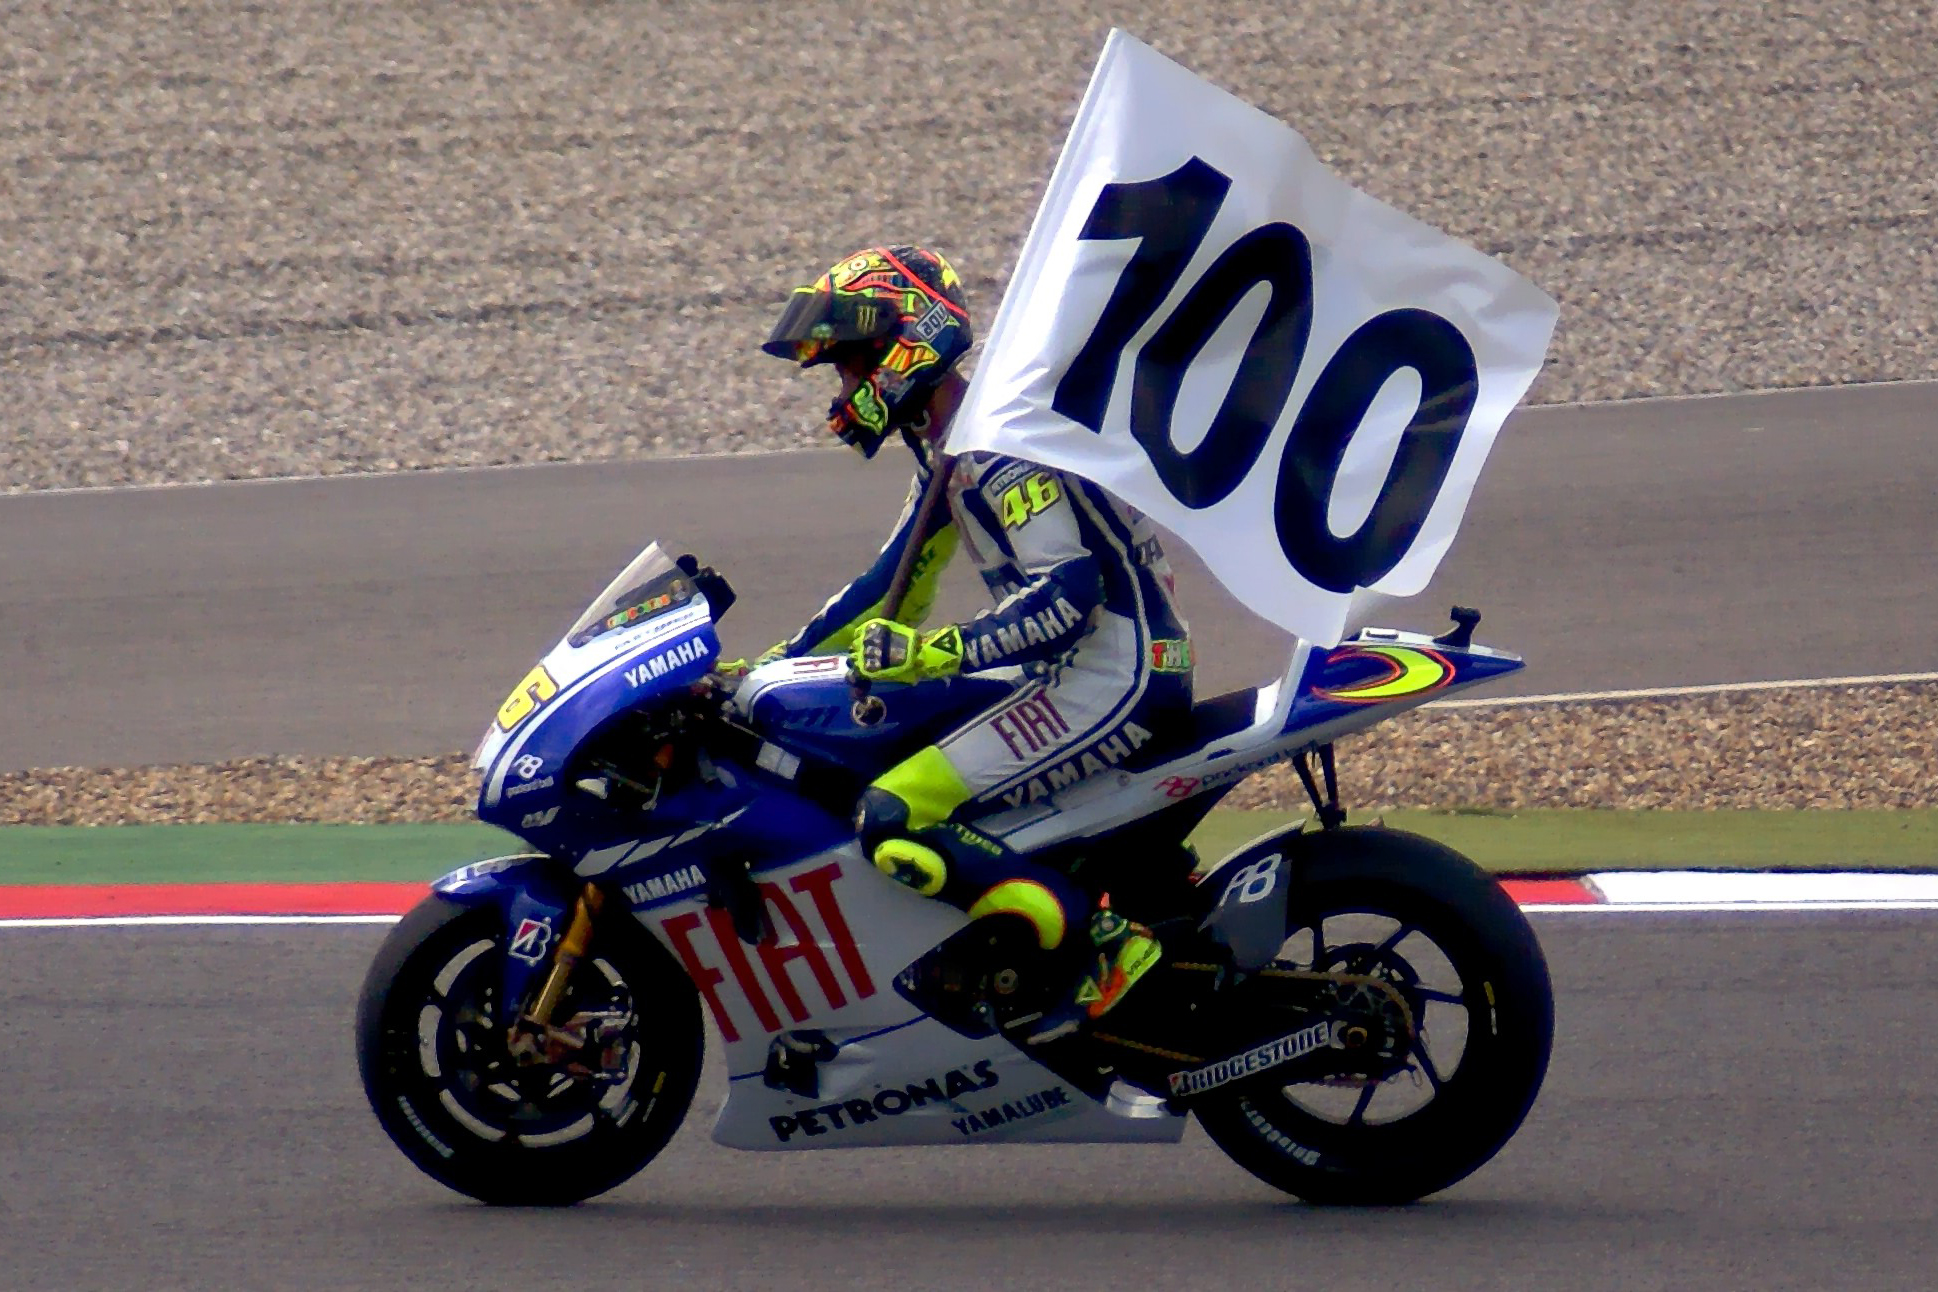 Top 10 GP riders of all time | Visordown